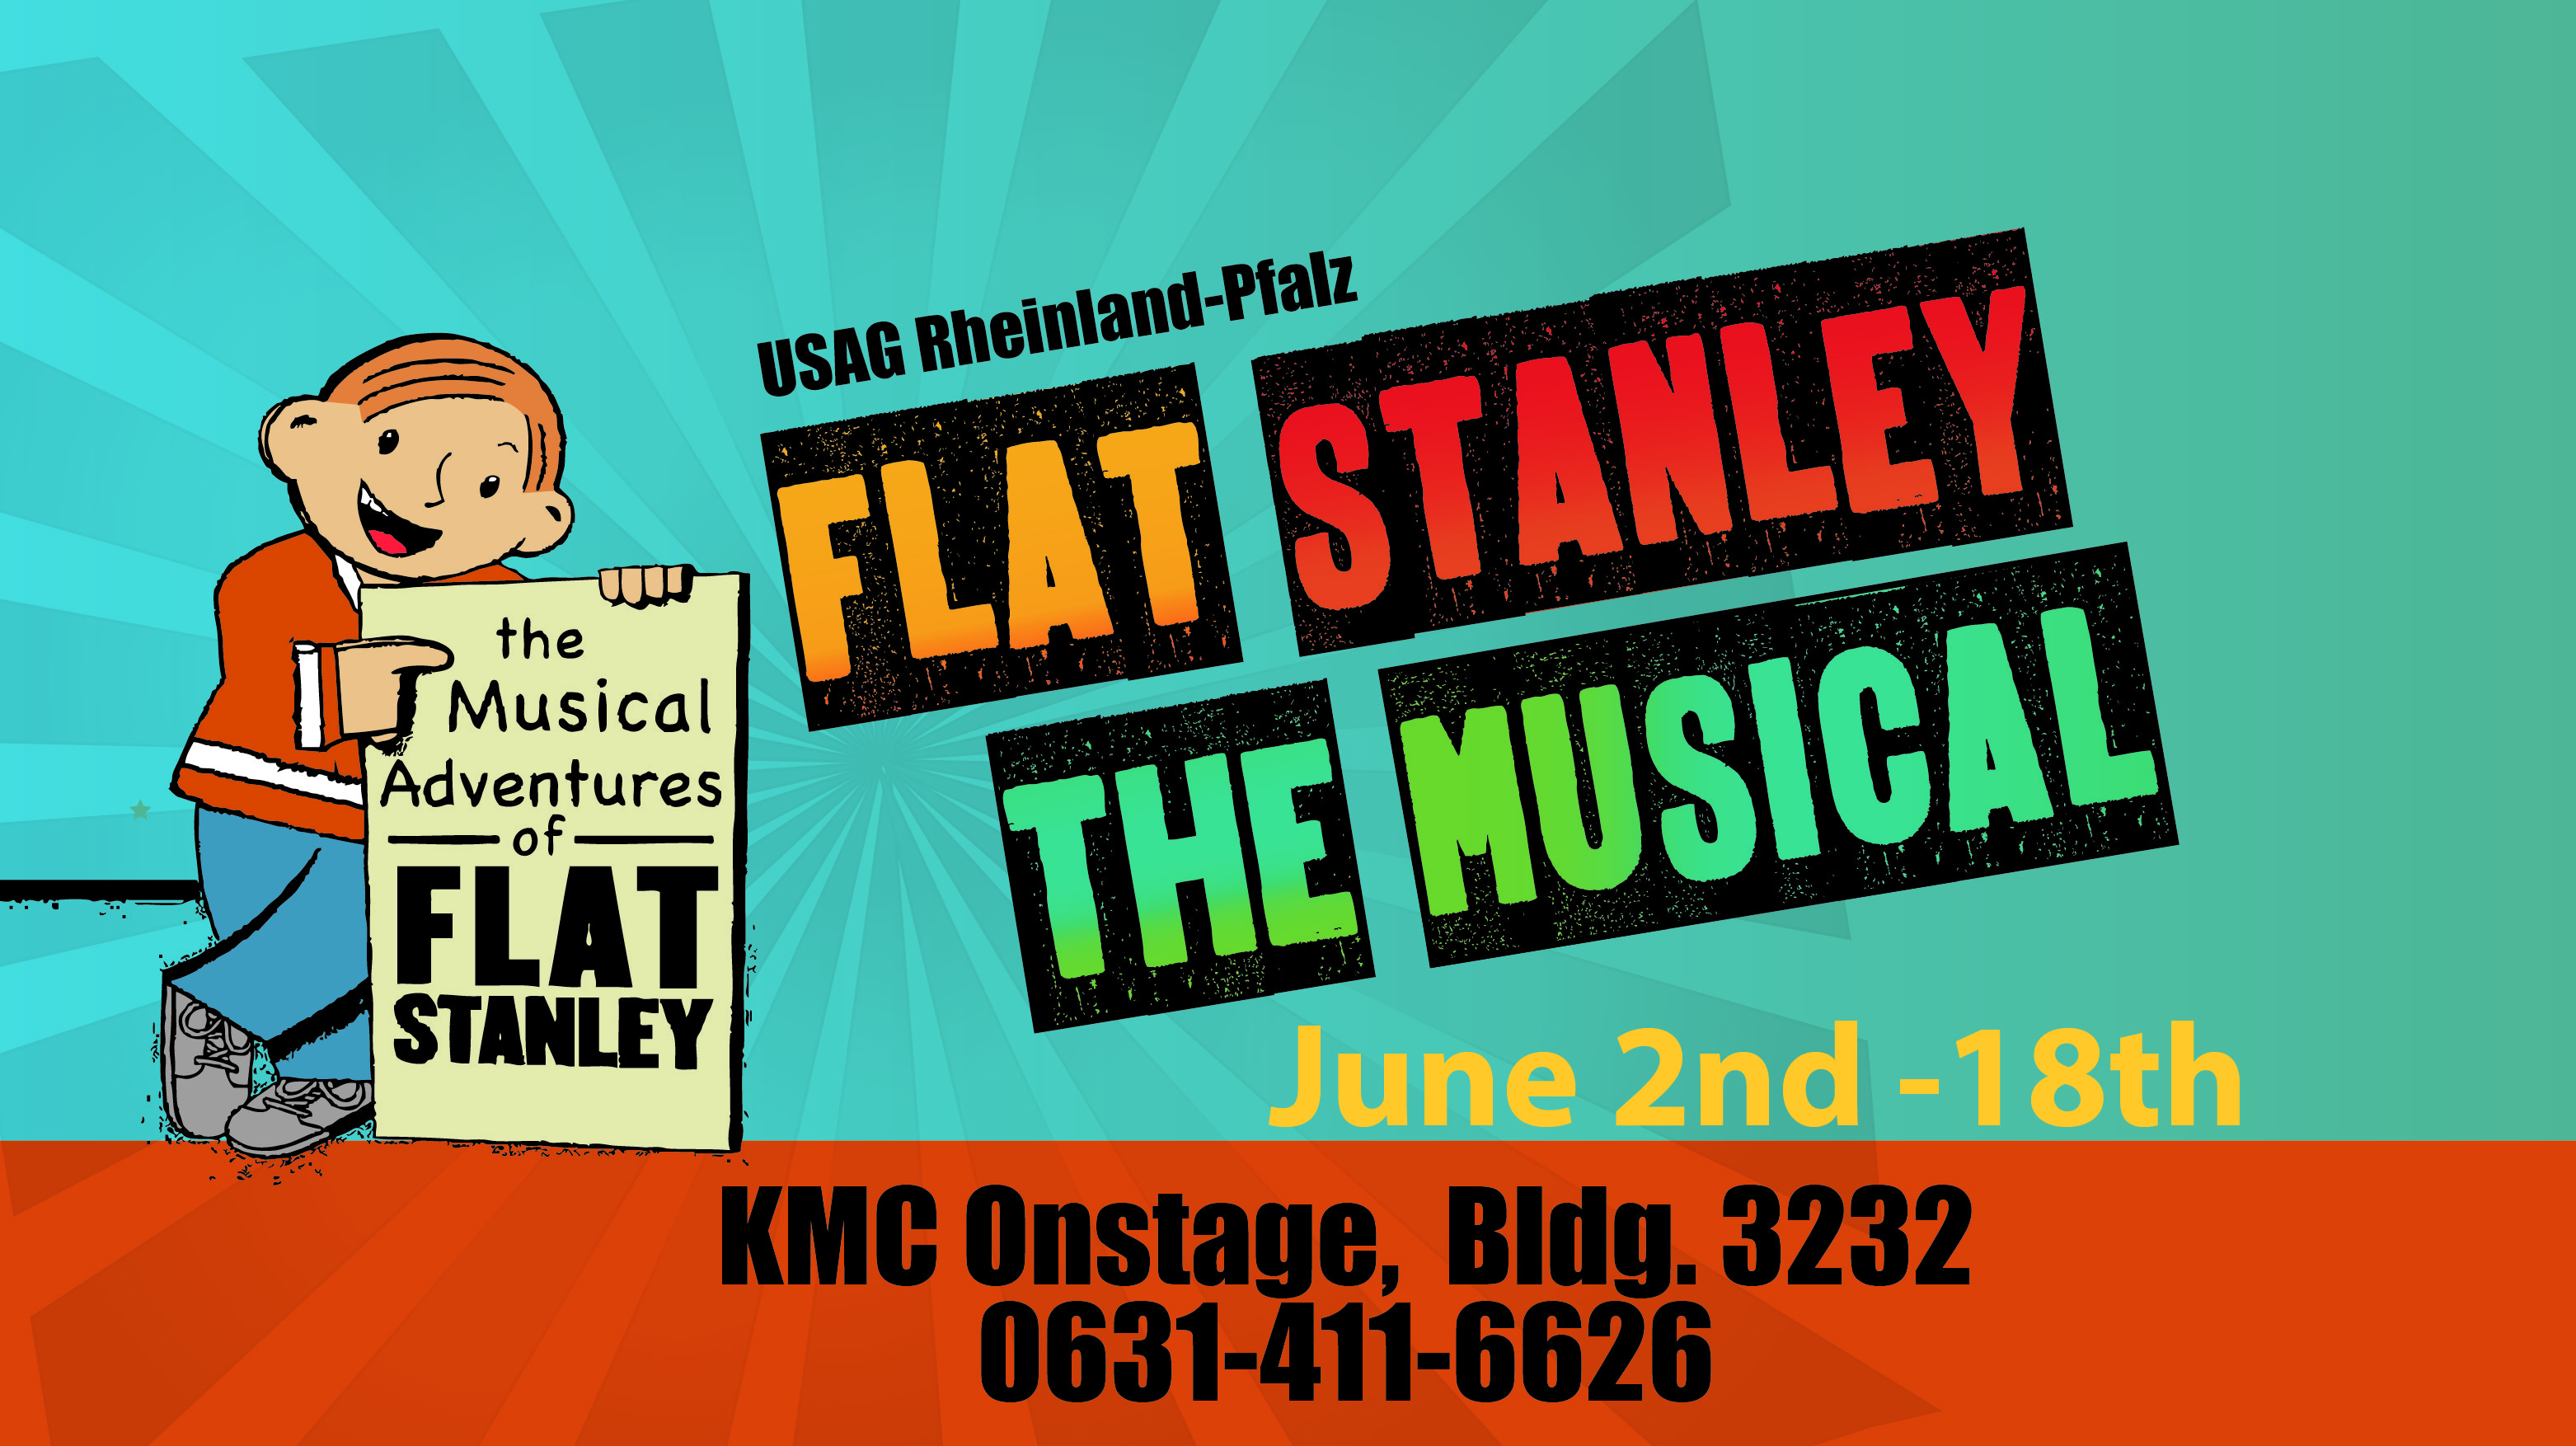 Flat Stanley the Musical